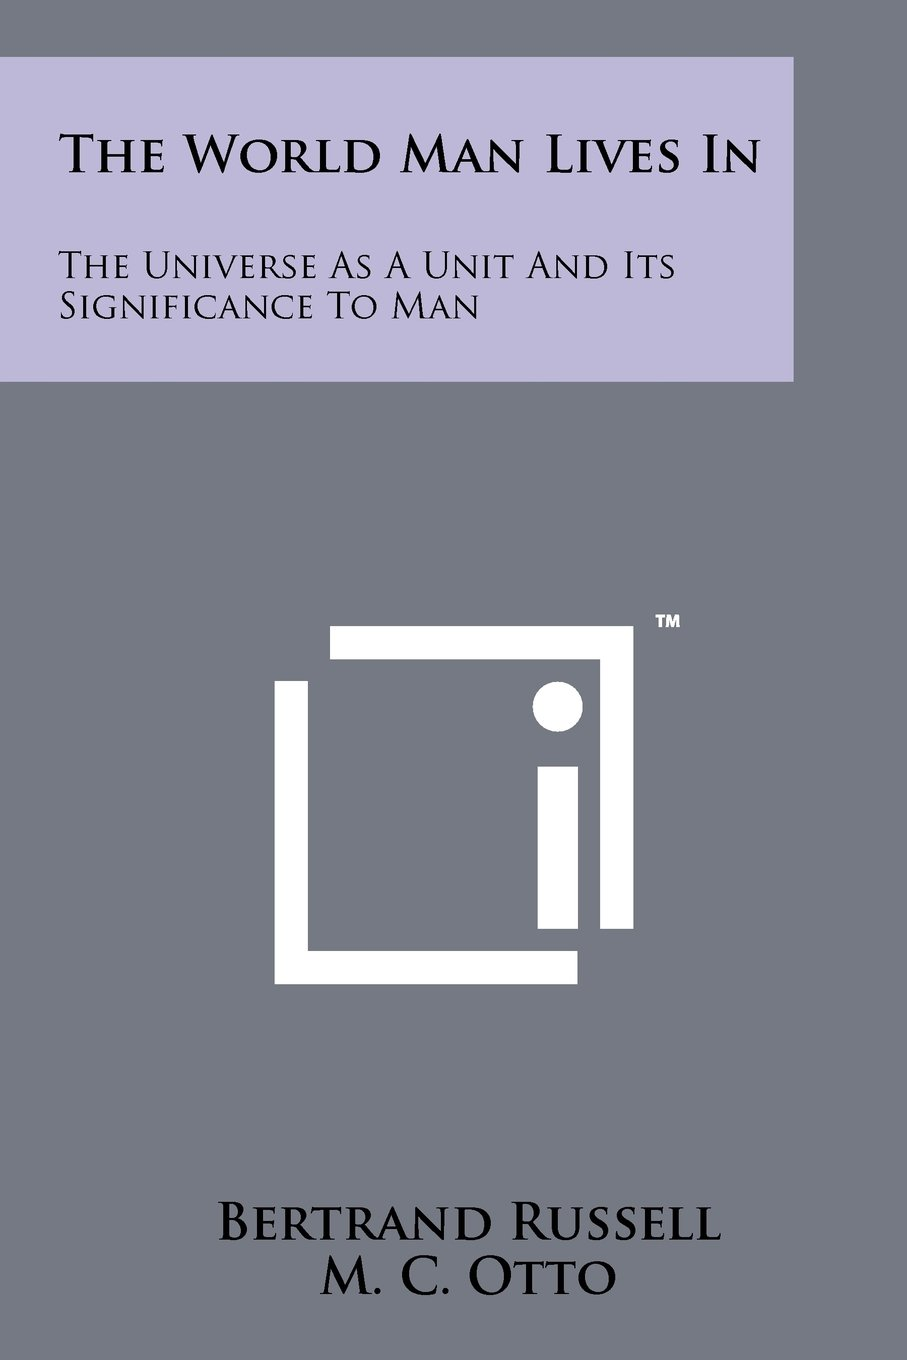 Download The World Man Lives in: The Universe as a Unit and Its Significance to Man PDF